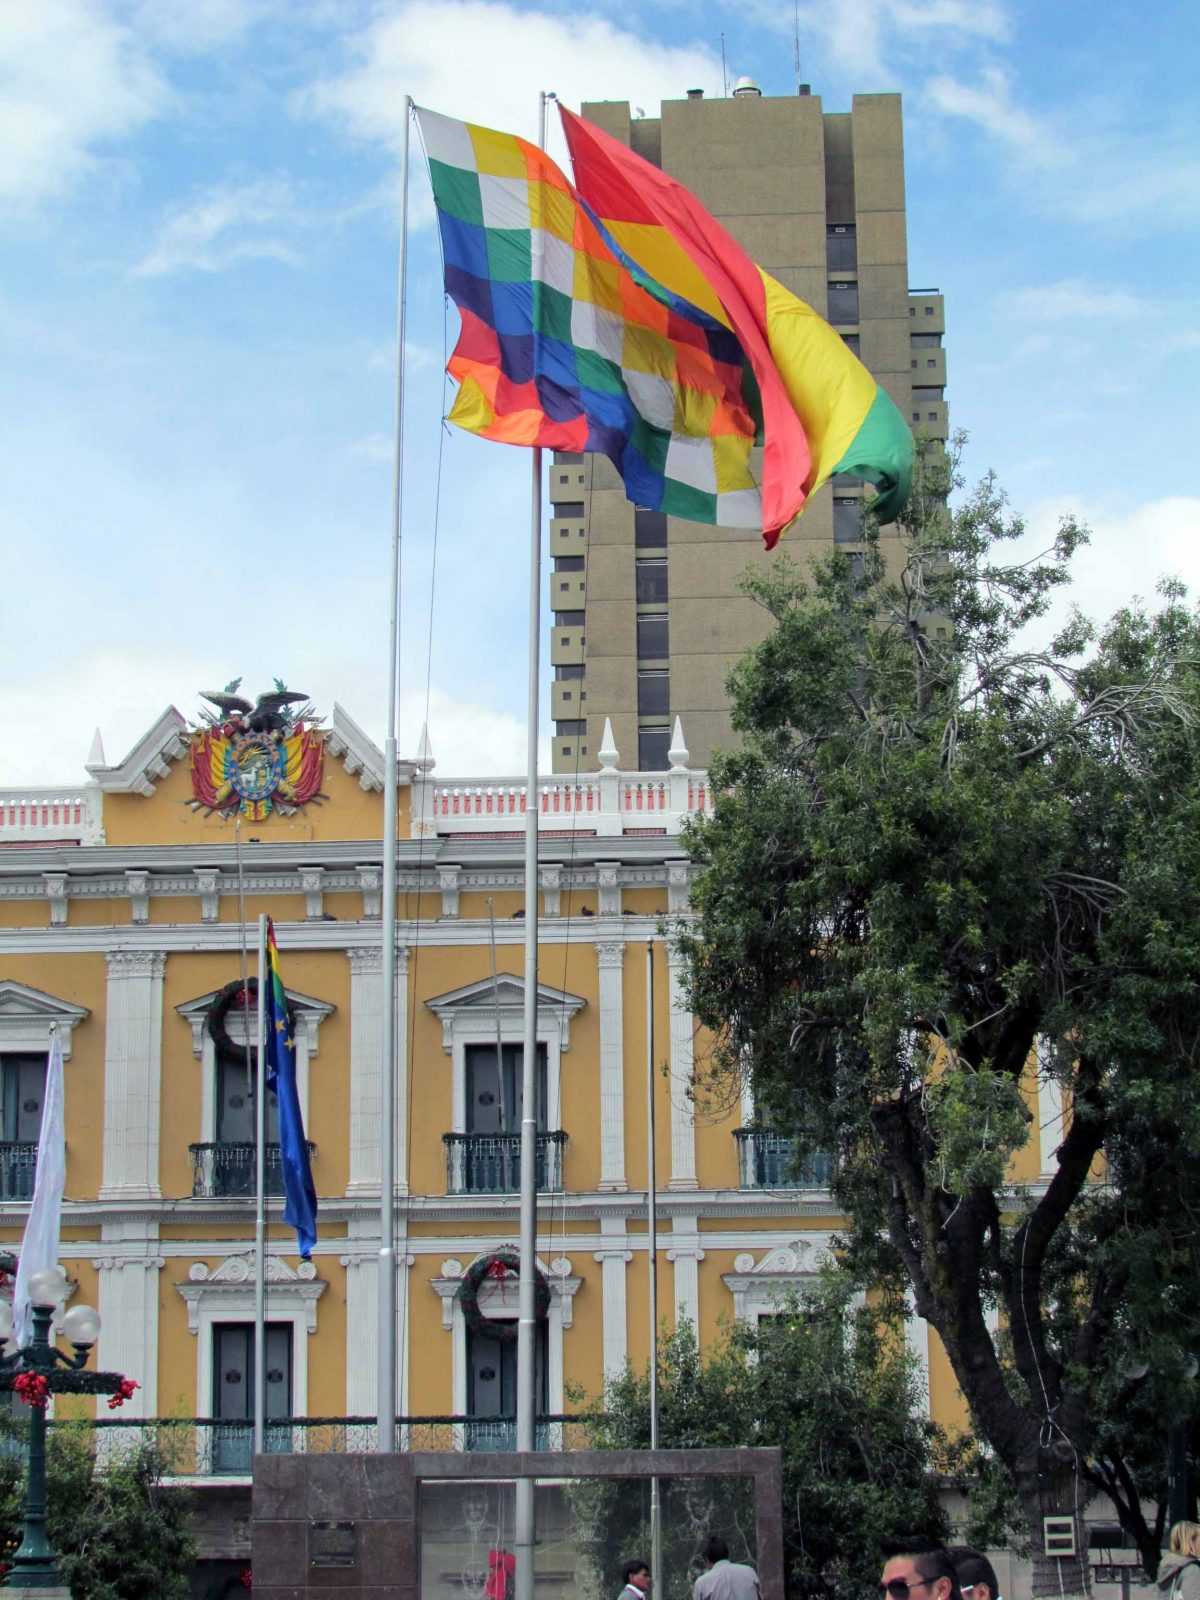 Flags flying at the Palacio de Gobierno, La Paz, Bolivia | ©Angela Drake